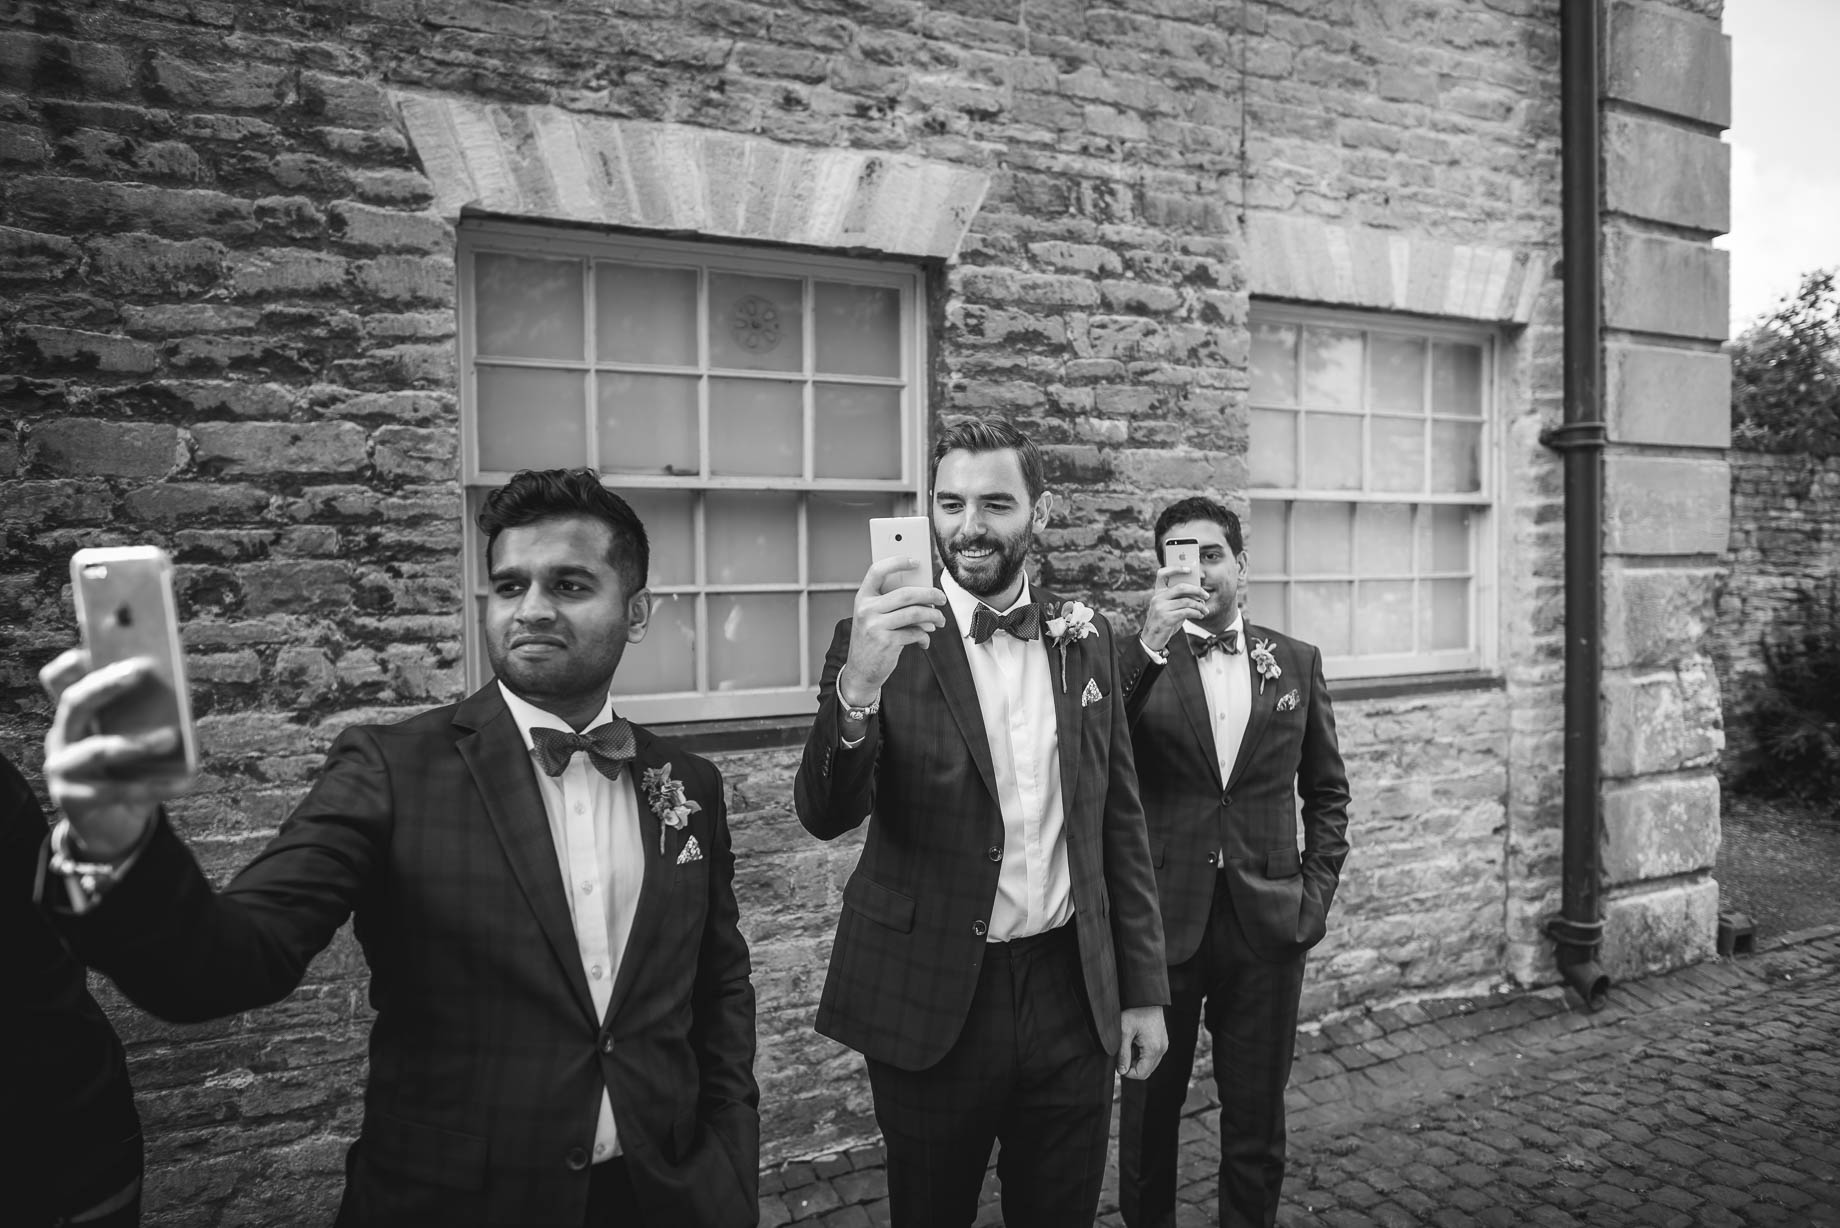 Aynhoe Park wedding photography - Guy Collier - Becky and Nick (113 of 233)